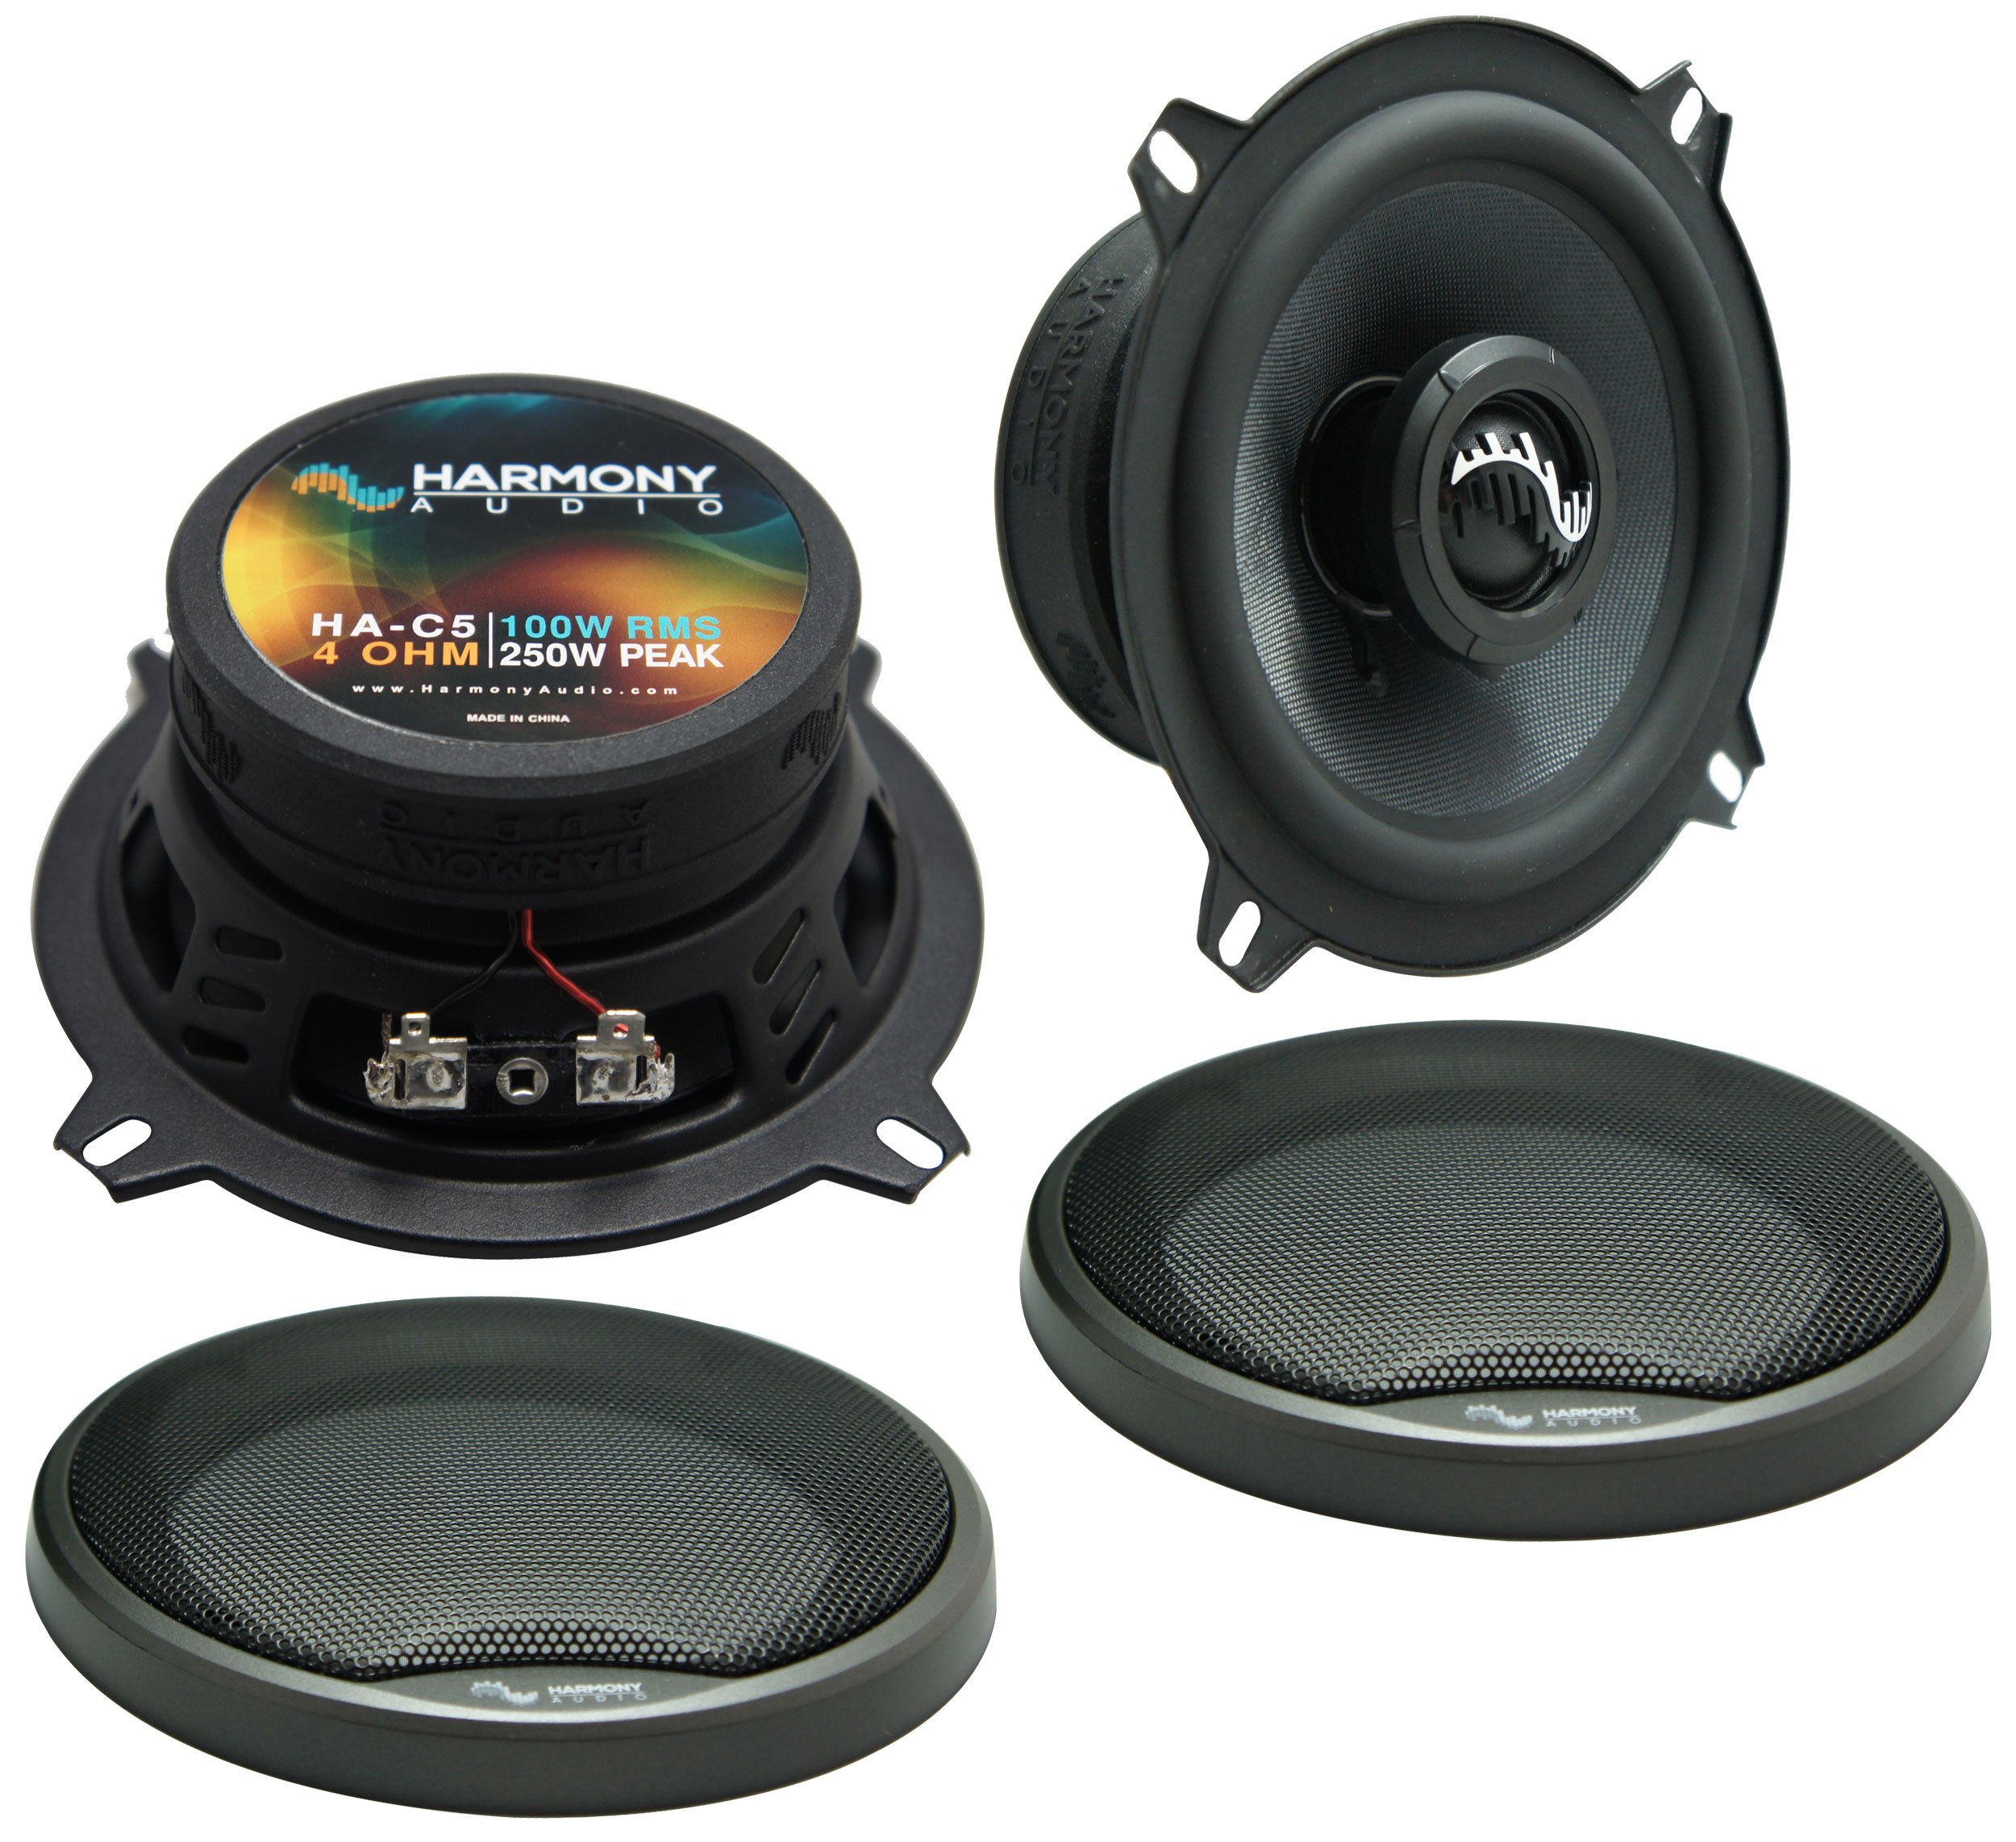 Fits Mazda CX-7 2007-2012 Front Door Replacement Speaker Harmony HA-C5 Premium Speakers